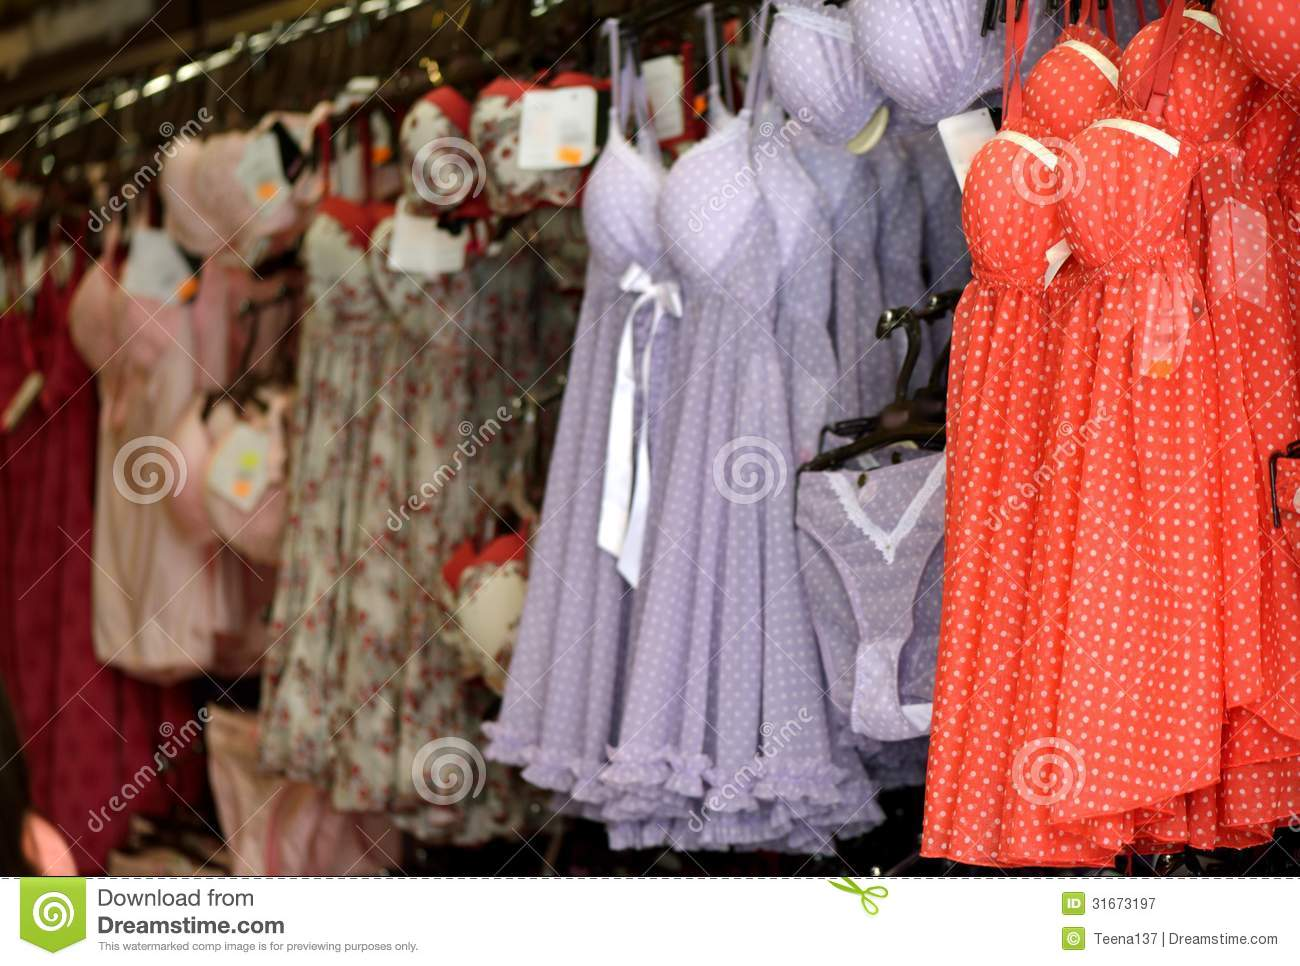 Lingerie Shop Royalty Free Stock Photography - Image: 31673197